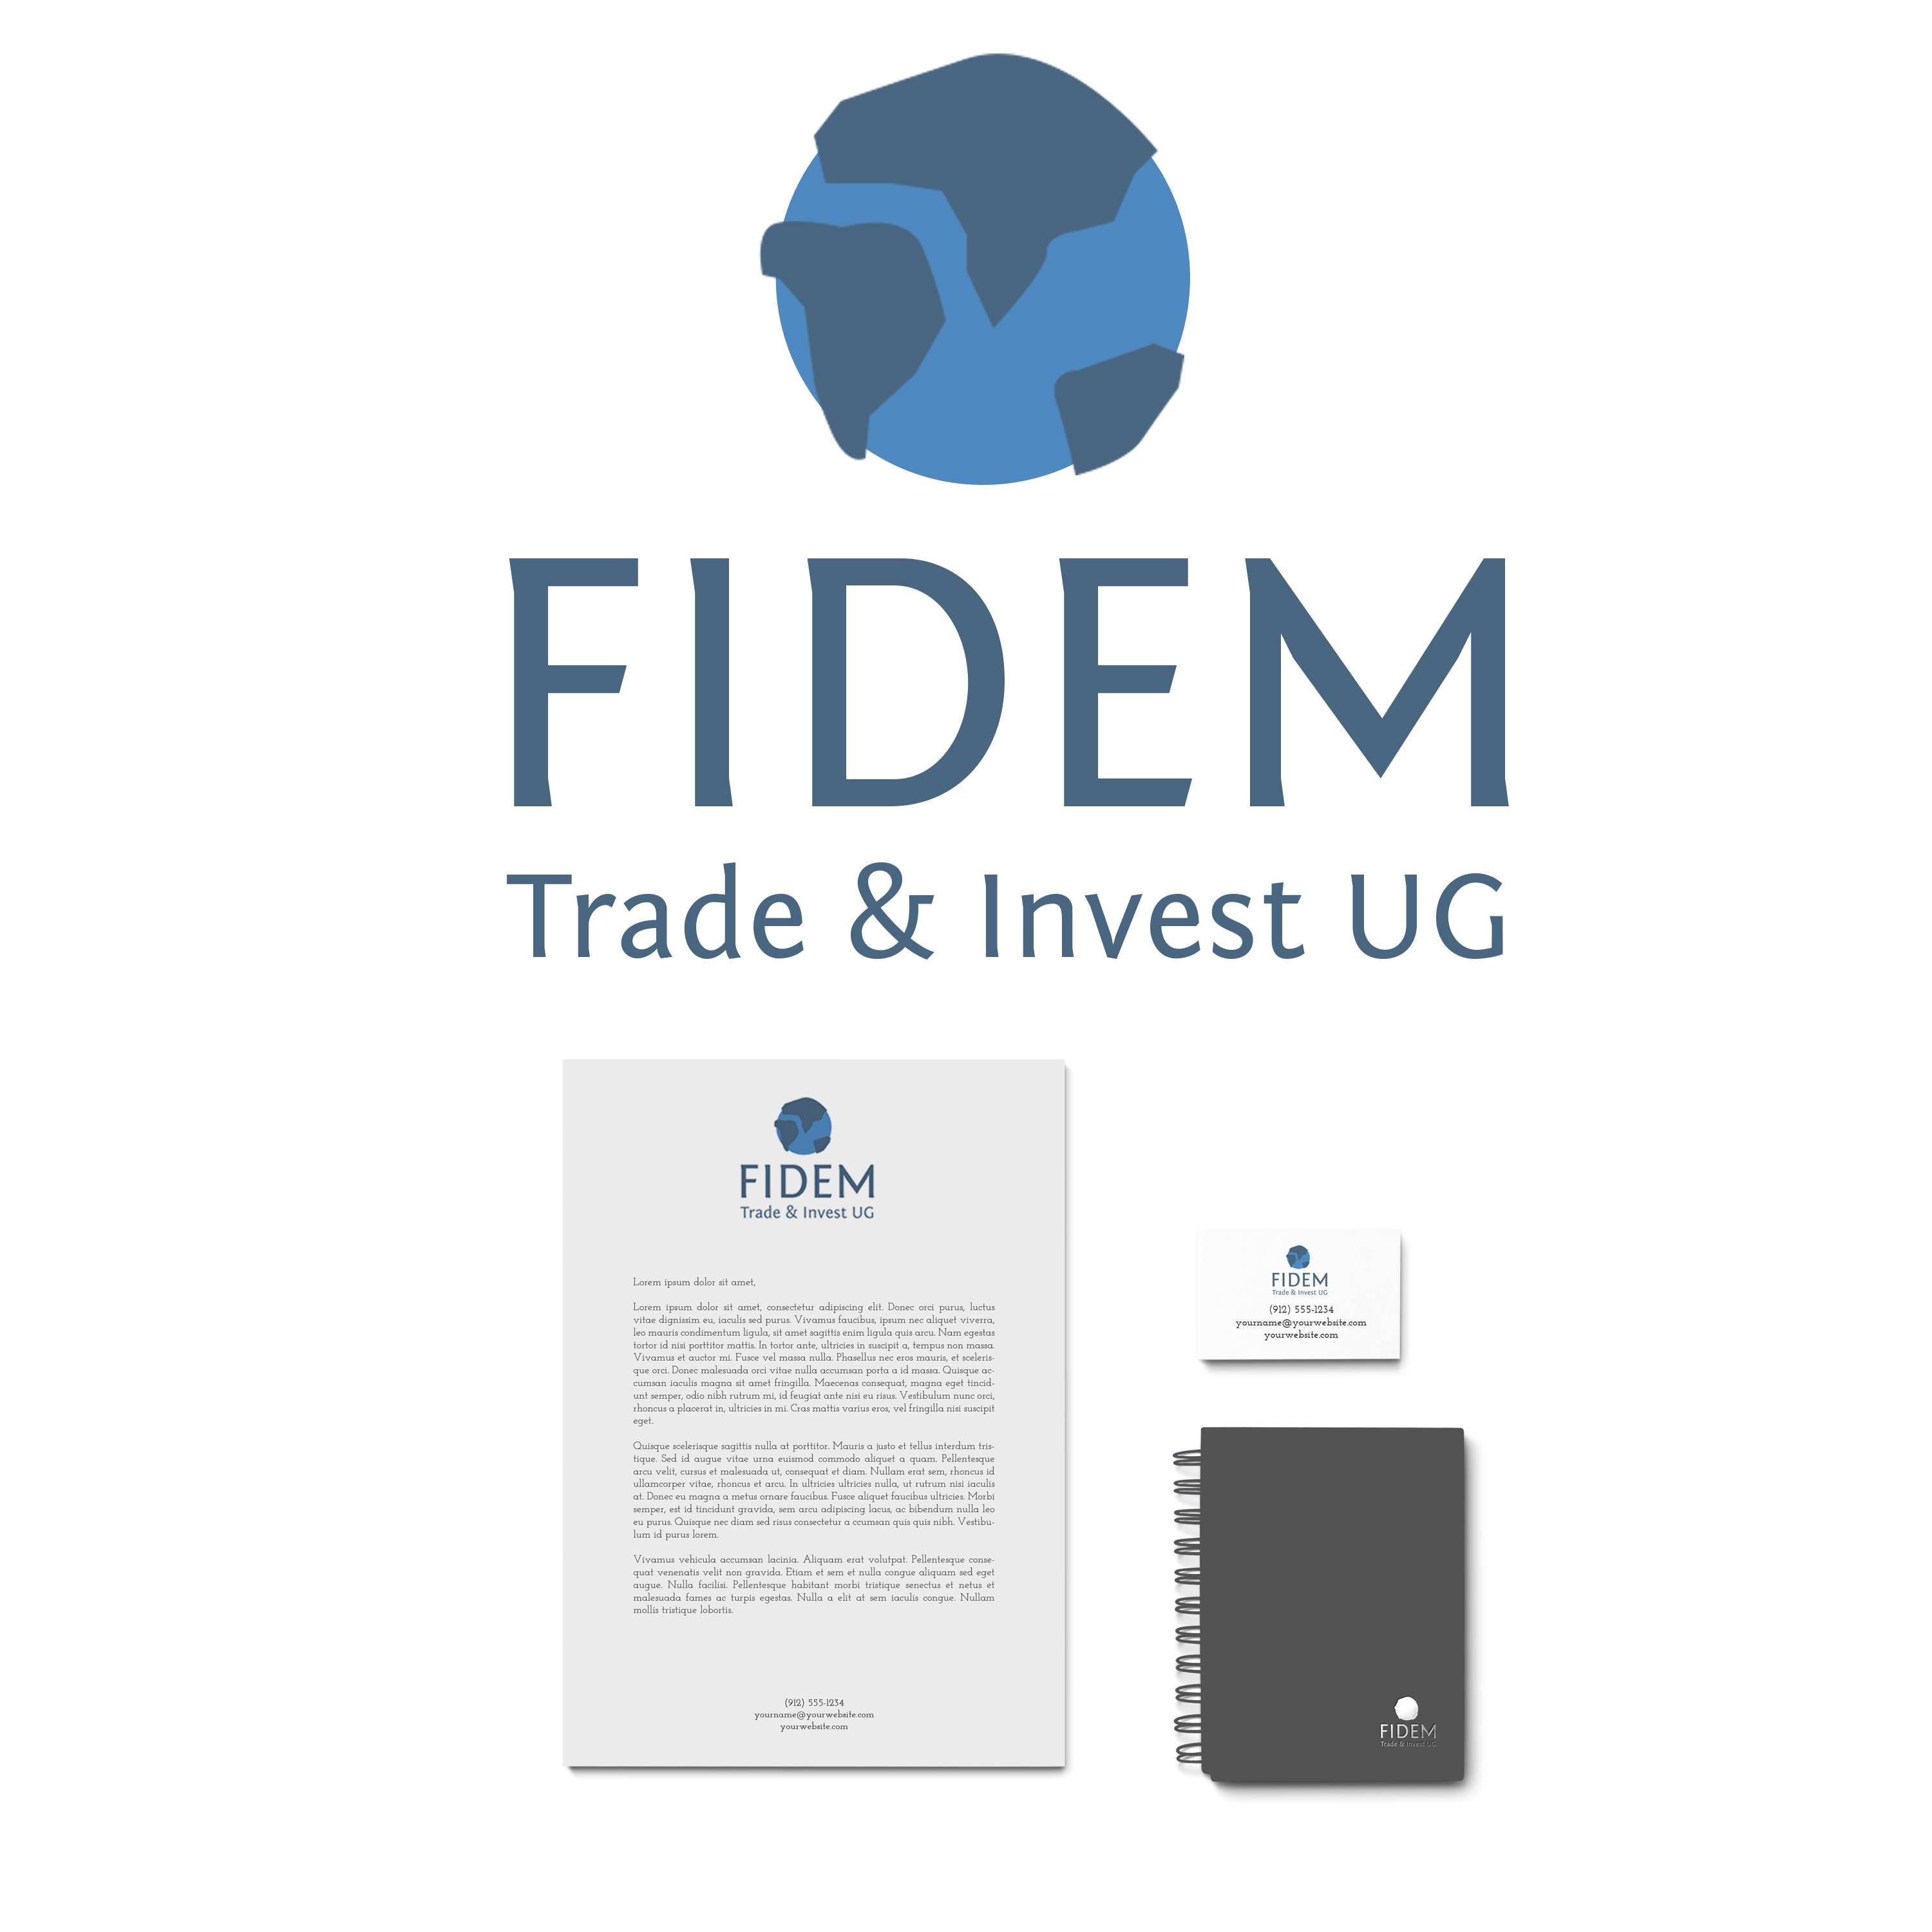 Logo Design by Utkarsh Bhandari - Entry No. 463 in the Logo Design Contest Professional Logo Design for FIDEM Trade & Invest UG.